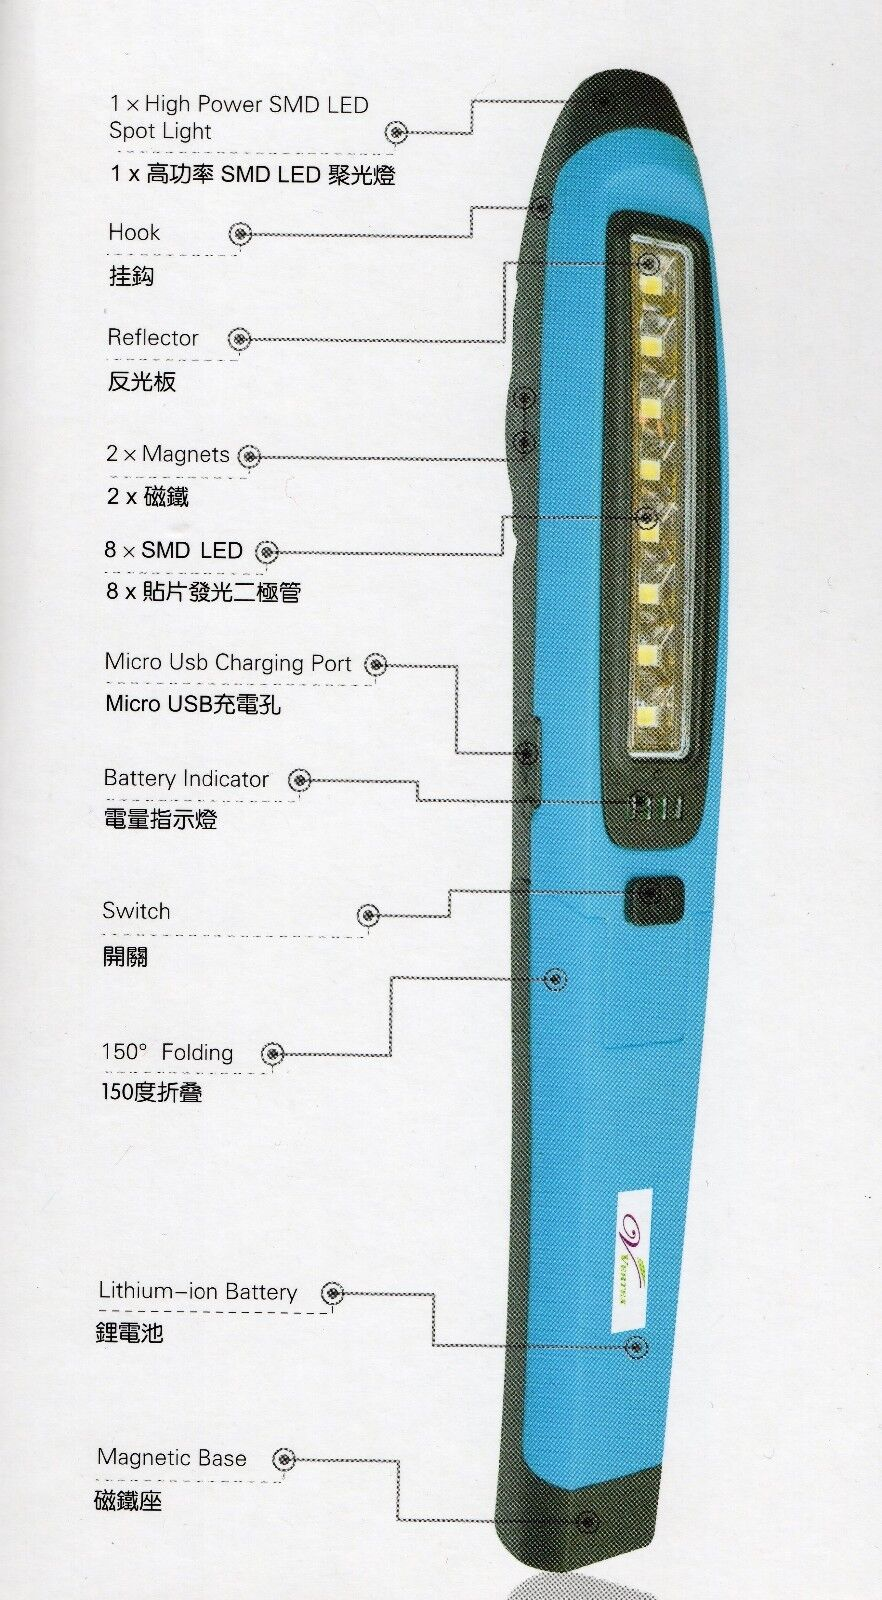 Ultra Bright LED LED Bright Mechanic Work Light Lithium-Ion Rechargeable w/ Snap-on Quality 35da1b